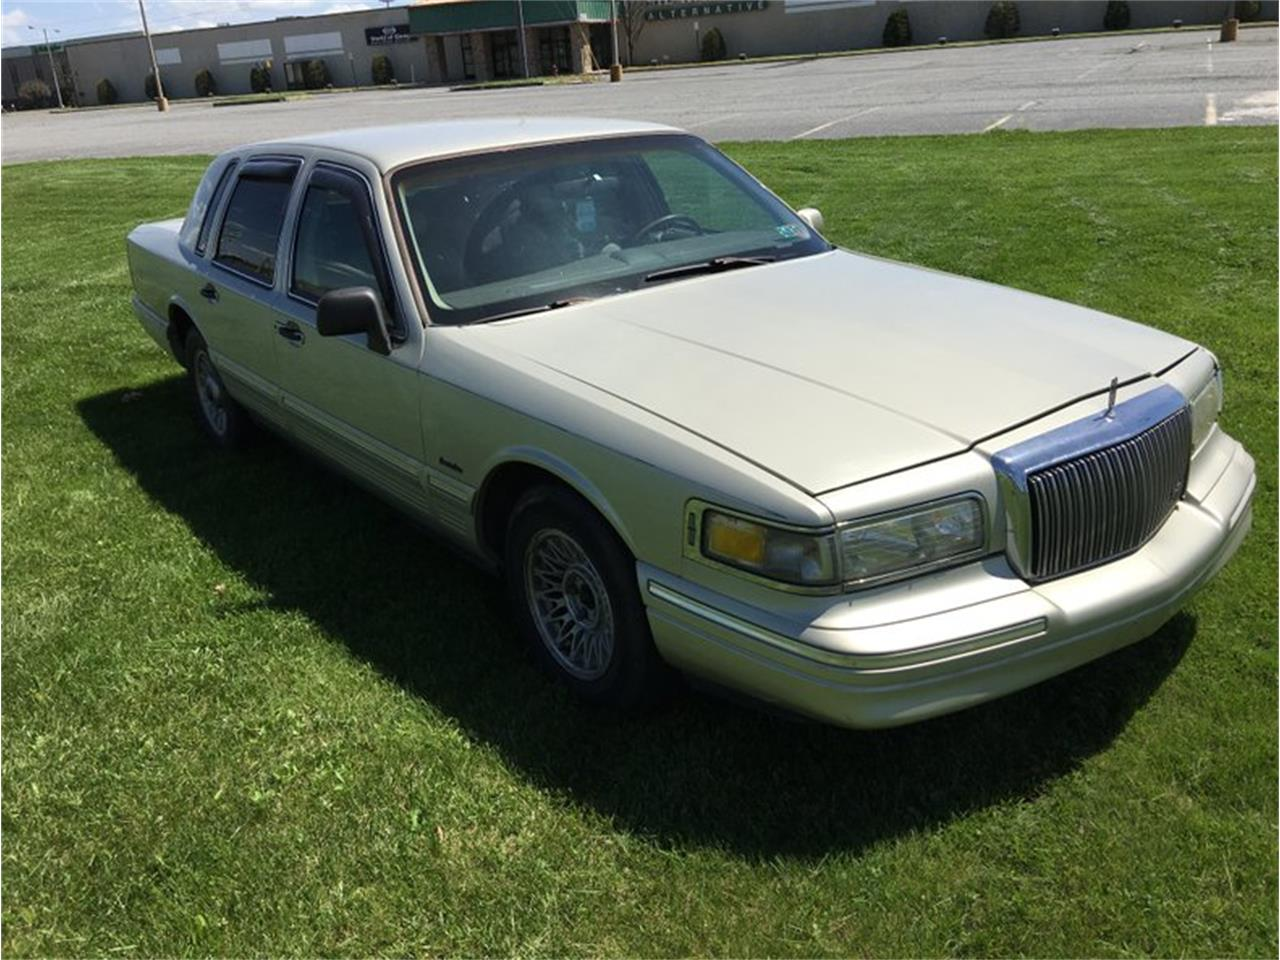 1997 Lincoln Town Car for sale in Morgantown, PA – photo 8